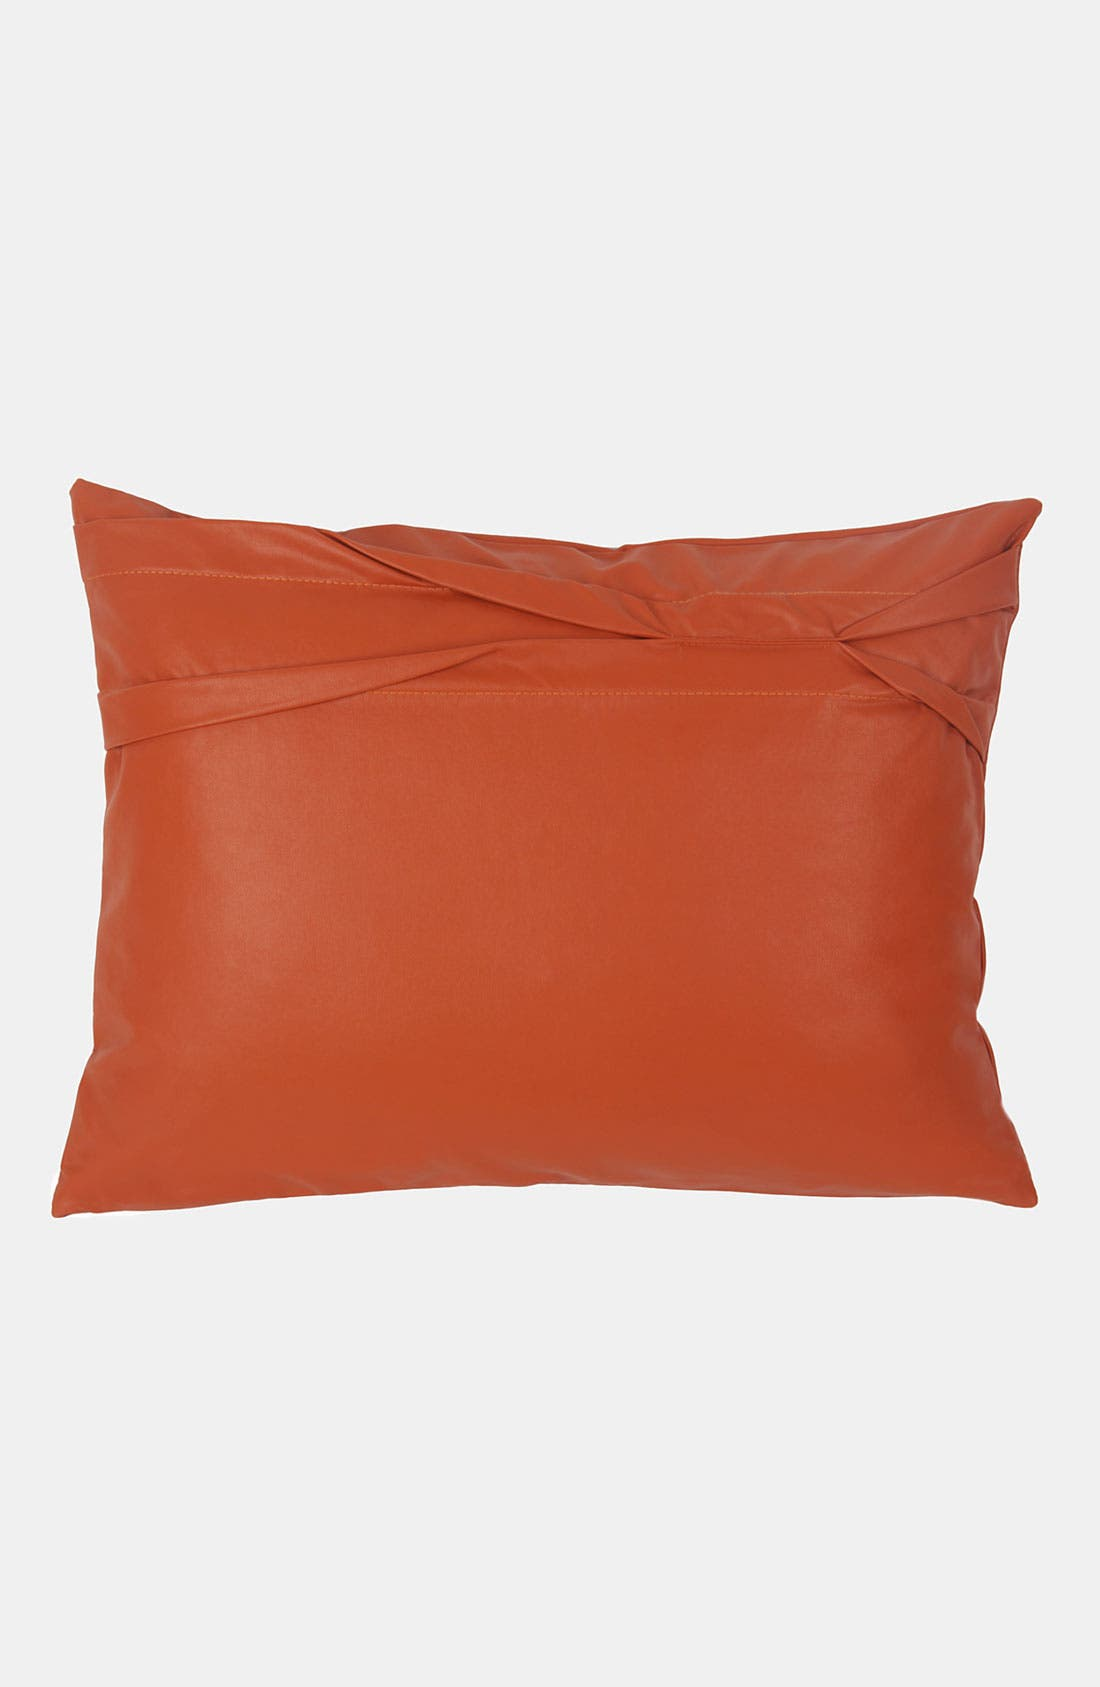 Main Image - Blissliving Home 'Theo - Persimmon' Faux Leather Pillow (Online Only)